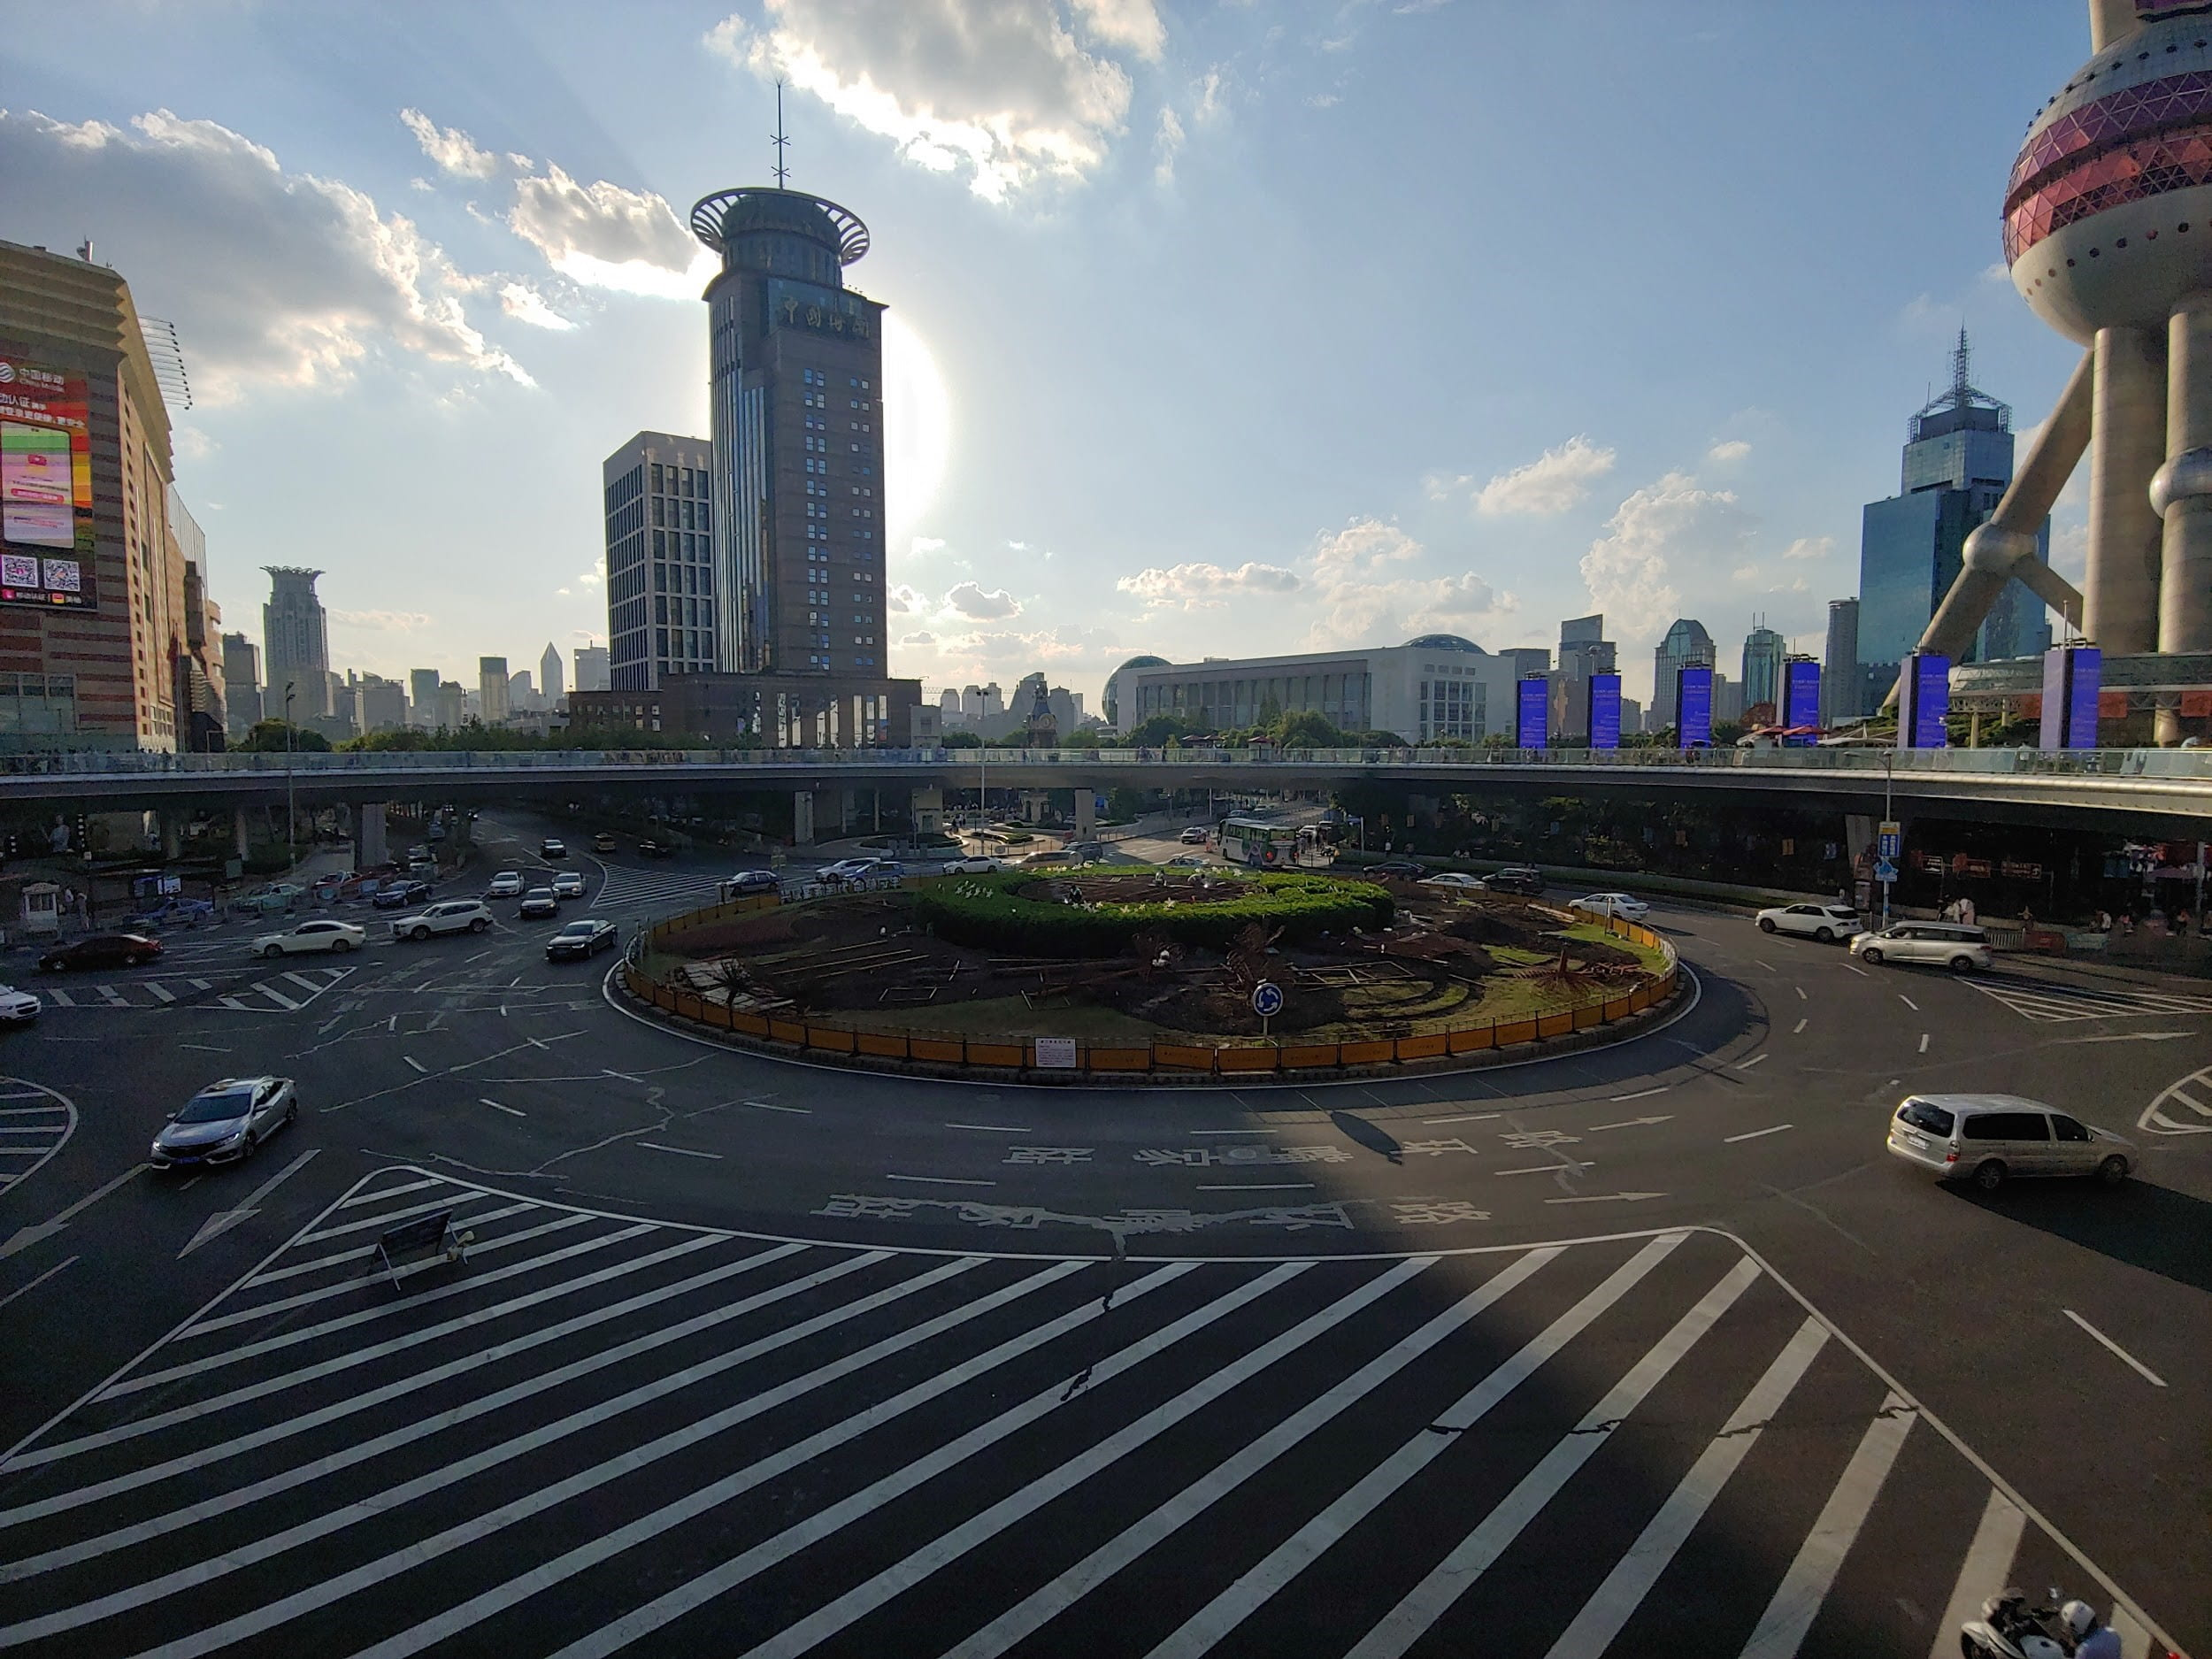 Roundabout in Shanghai with skyline and blue sky in the background